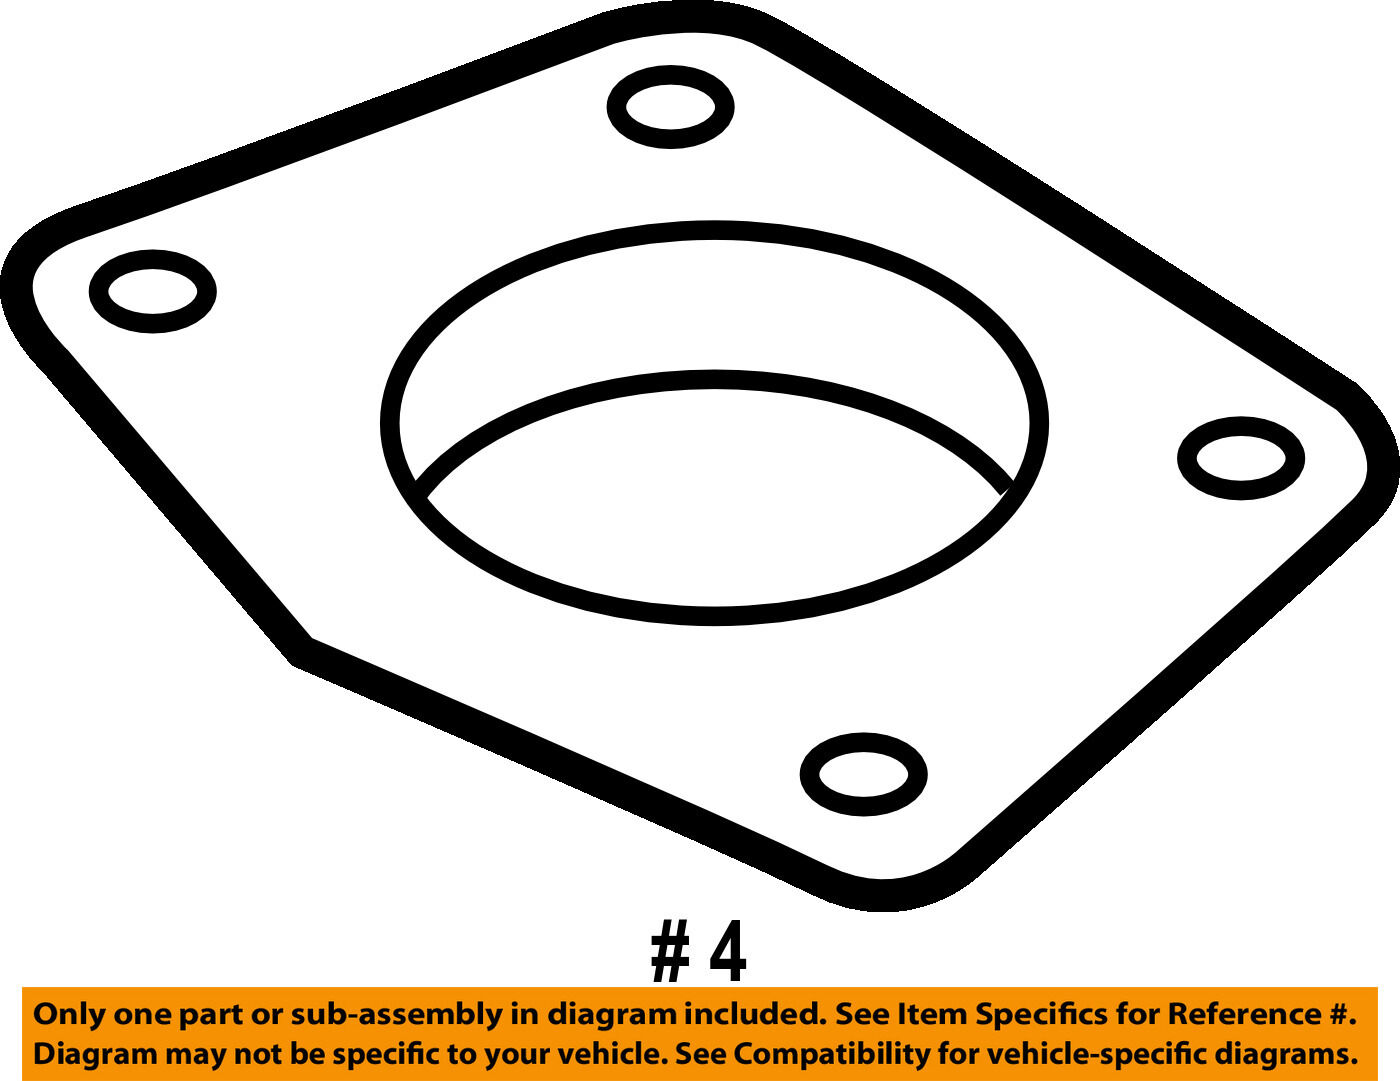 Mazda Oem 07 12 Cx 7 Turbo Turbocharger Gasket L3k913710 2918 2008 Parts Diagram 2 Of See More